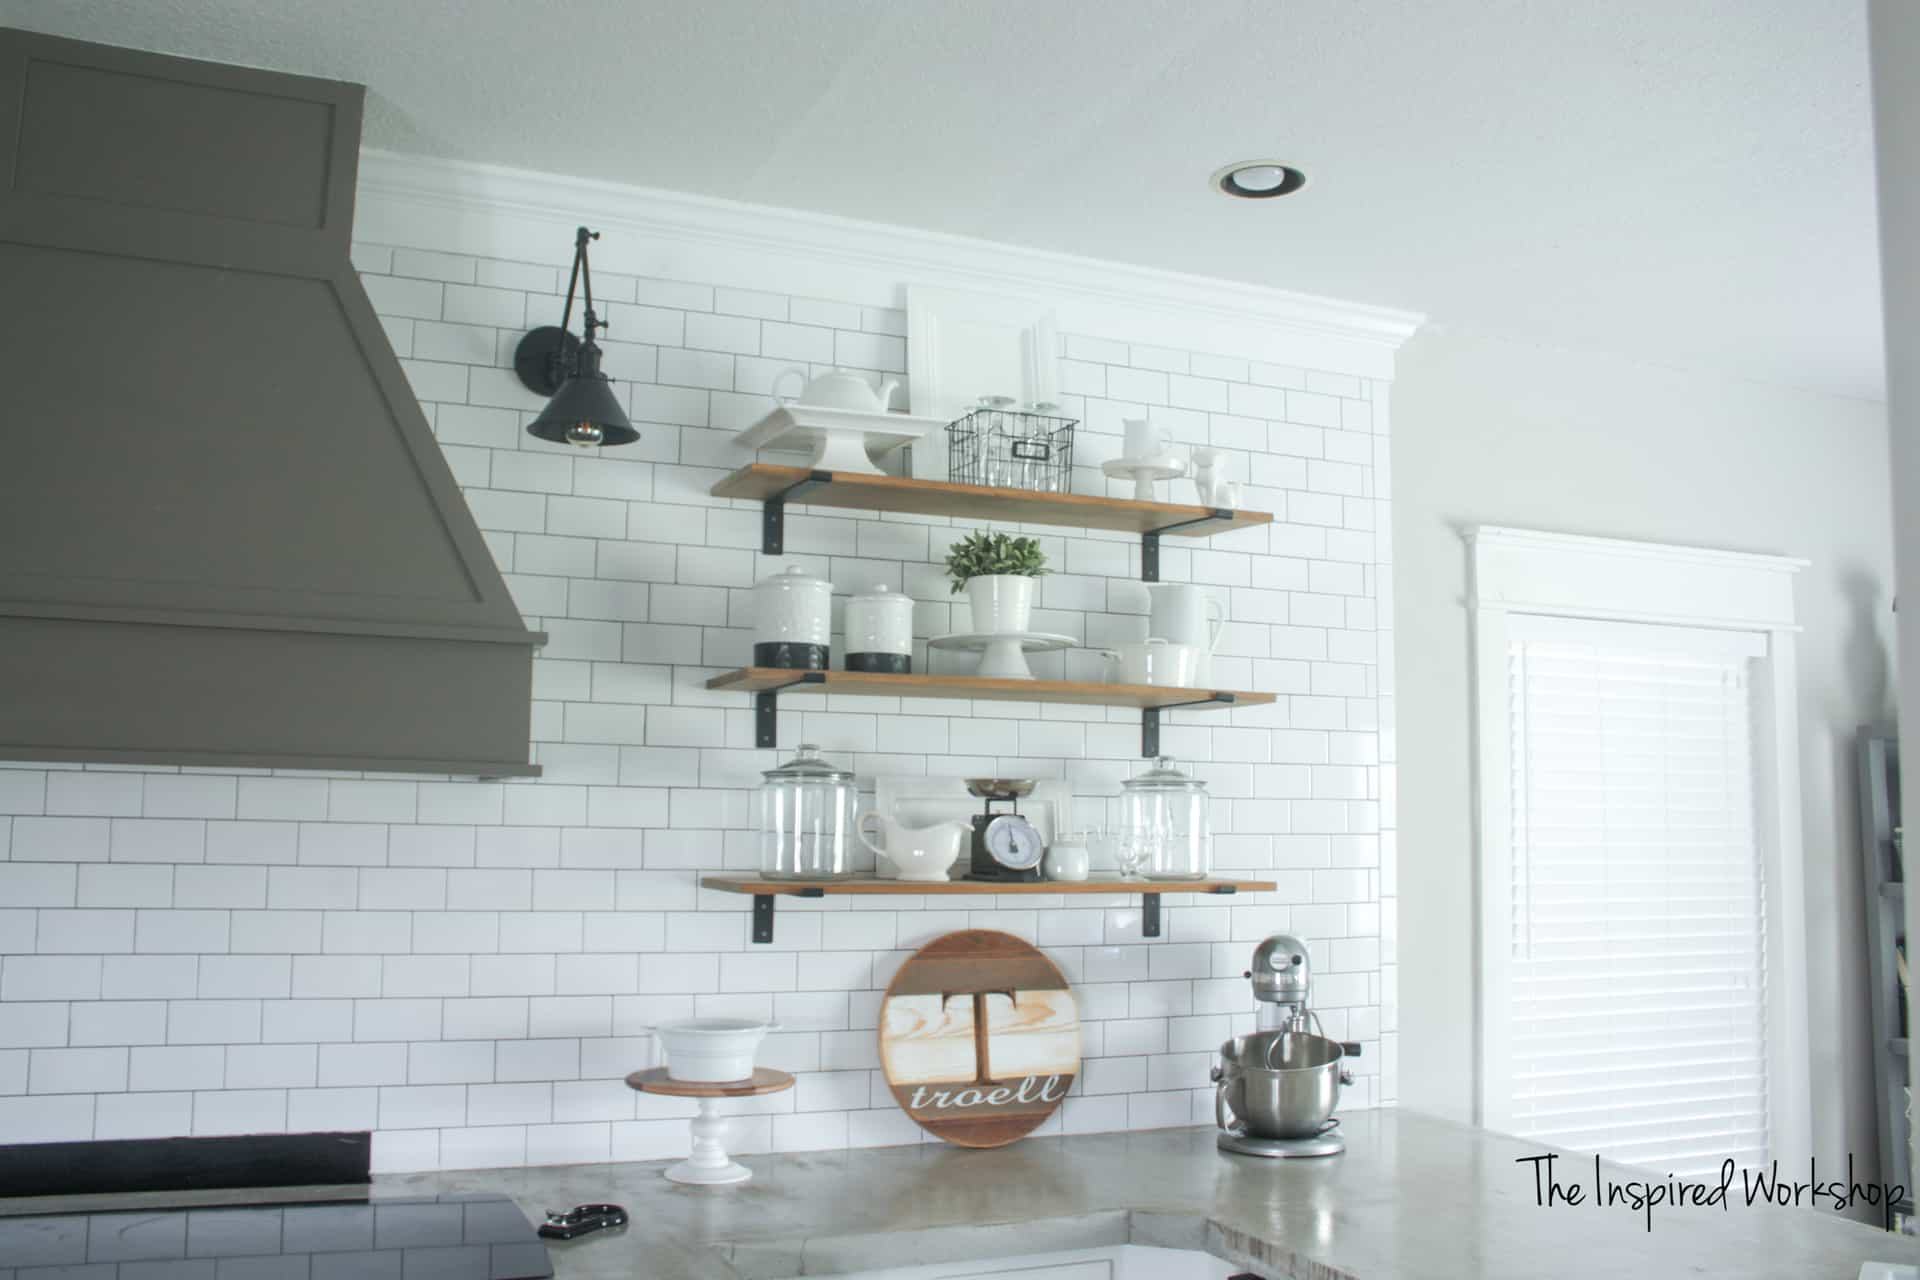 Kitchen Remodel with open shelving and subway tile wall